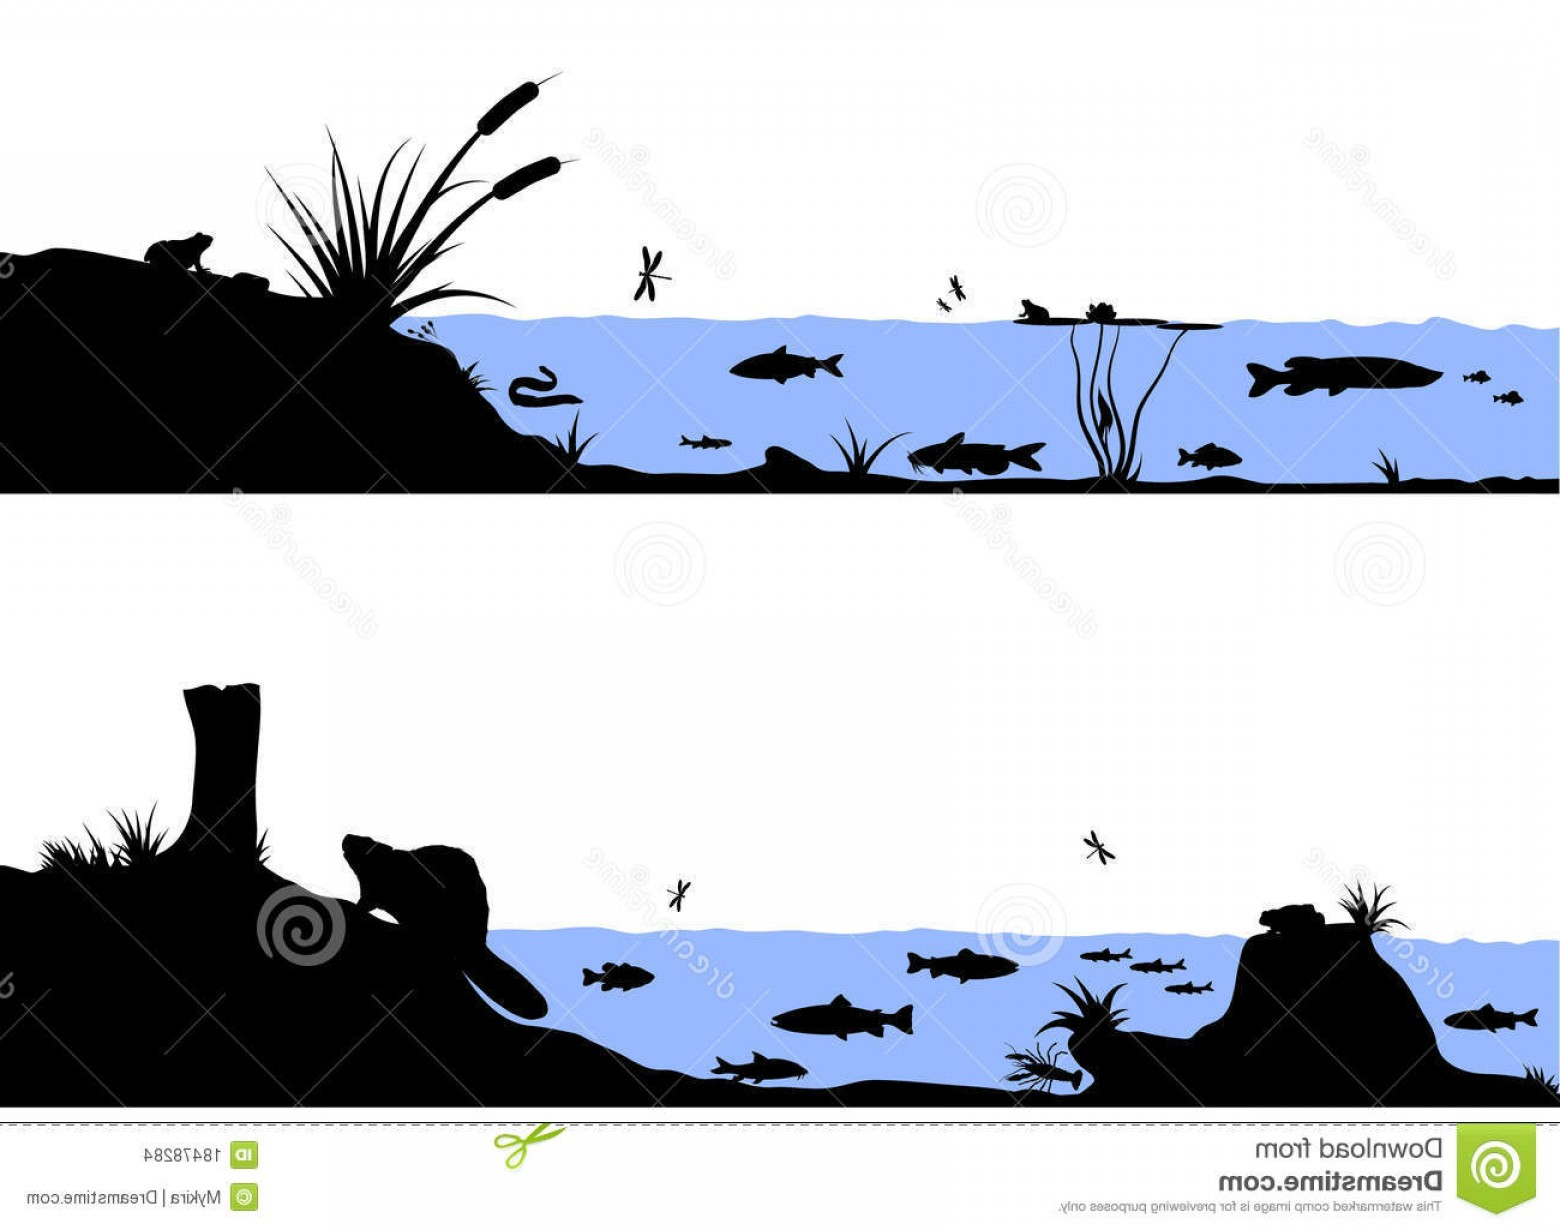 River Silhouette Vector Art: Stock Images River Life Vector Silhouette Illustration Image